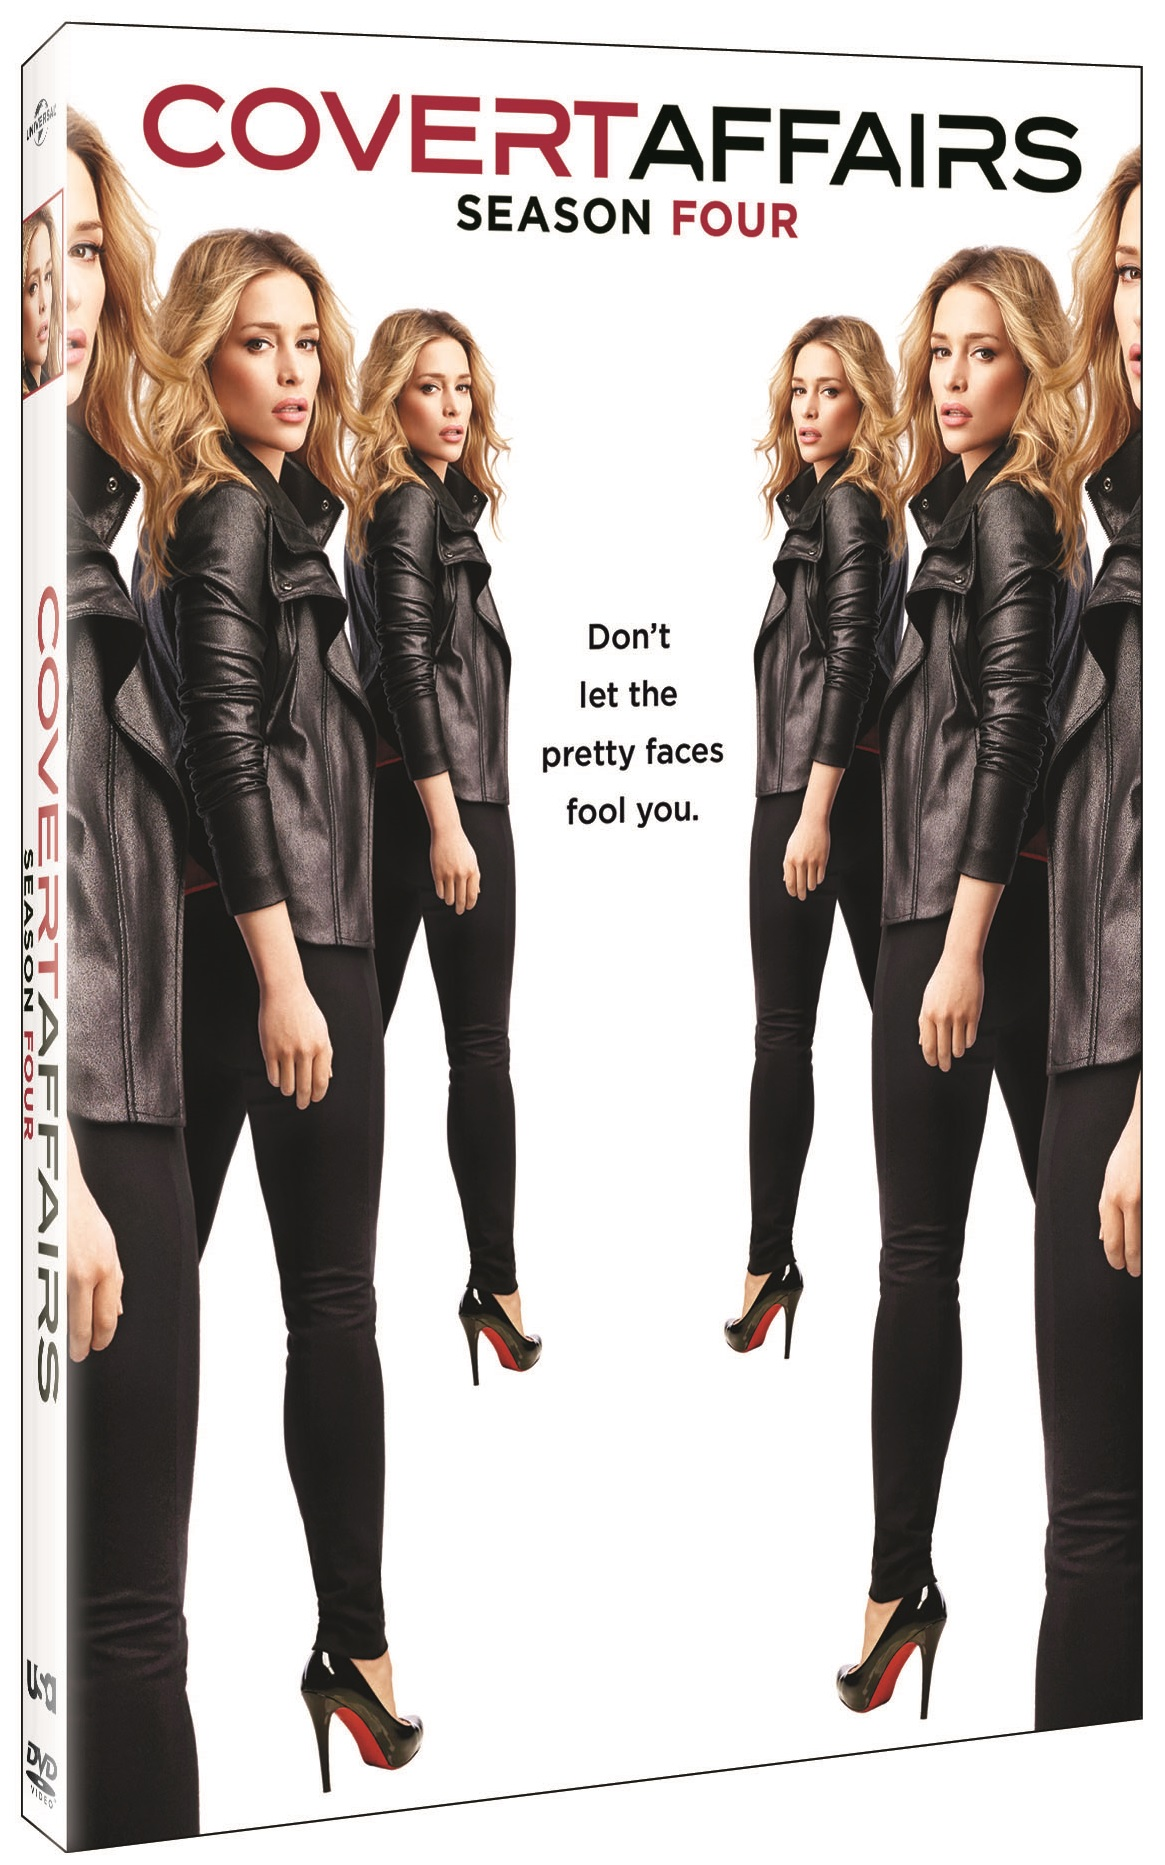 Covert Affairs Seaon 4 DVD Review